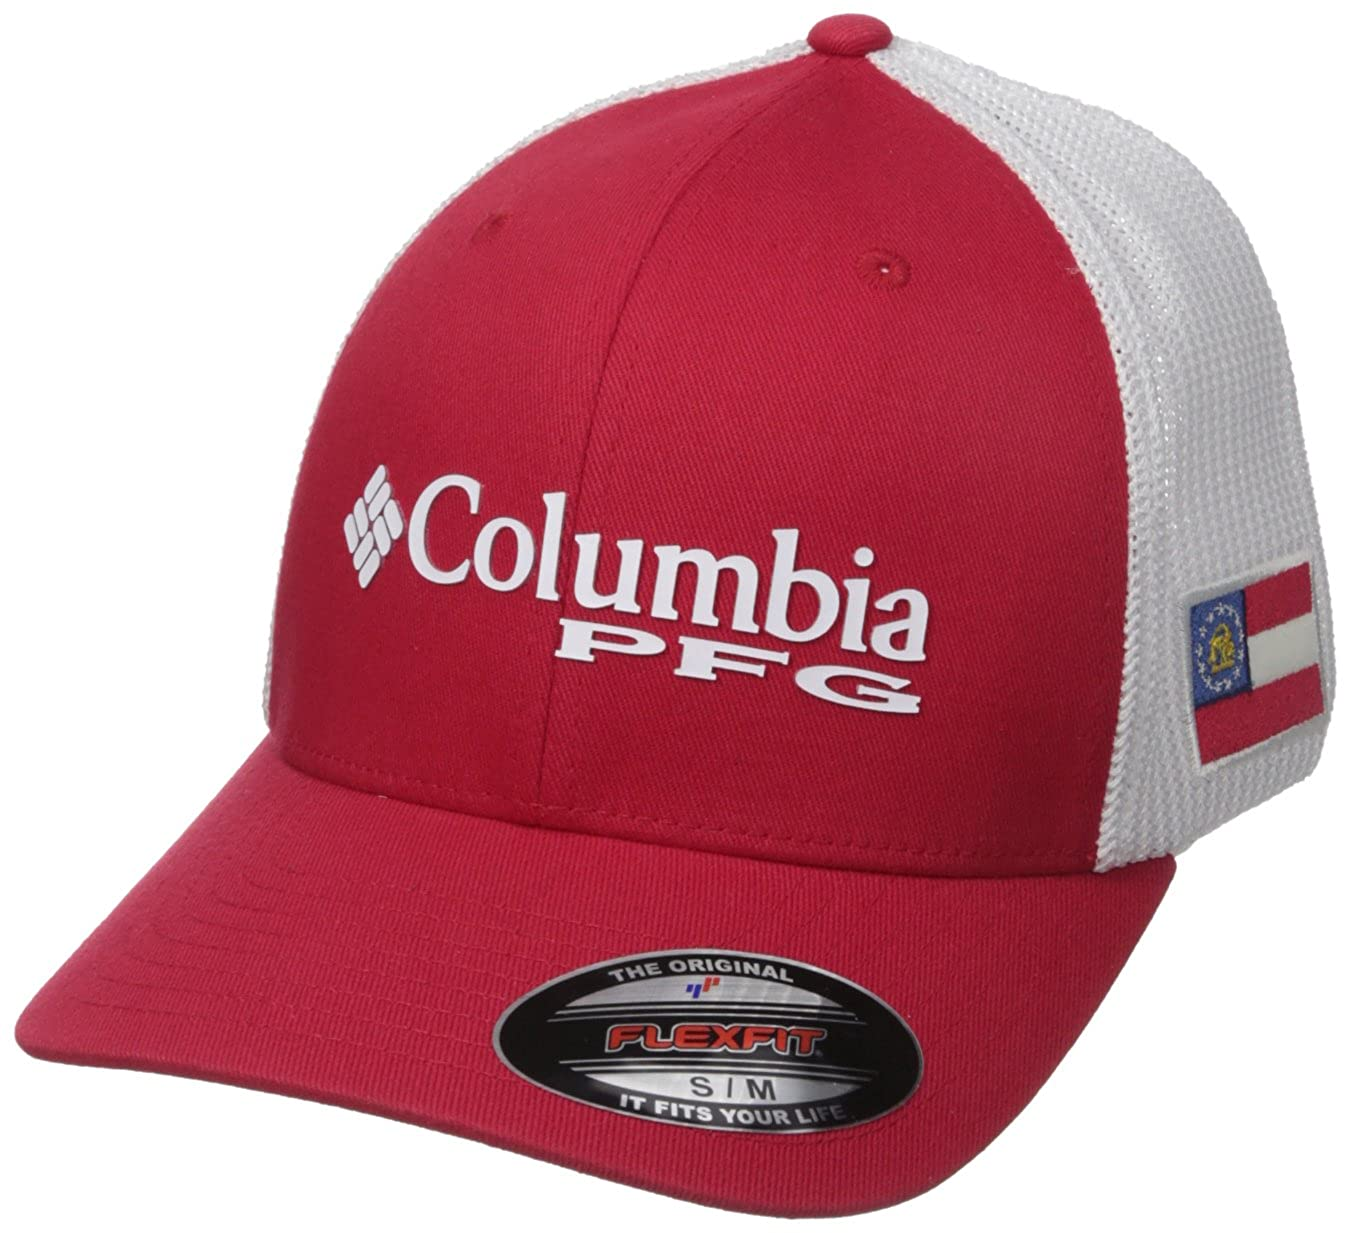 bdc509046d6258 Amazon.com   Columbia PFG Mesh Stateside Ball Cap   Clothing